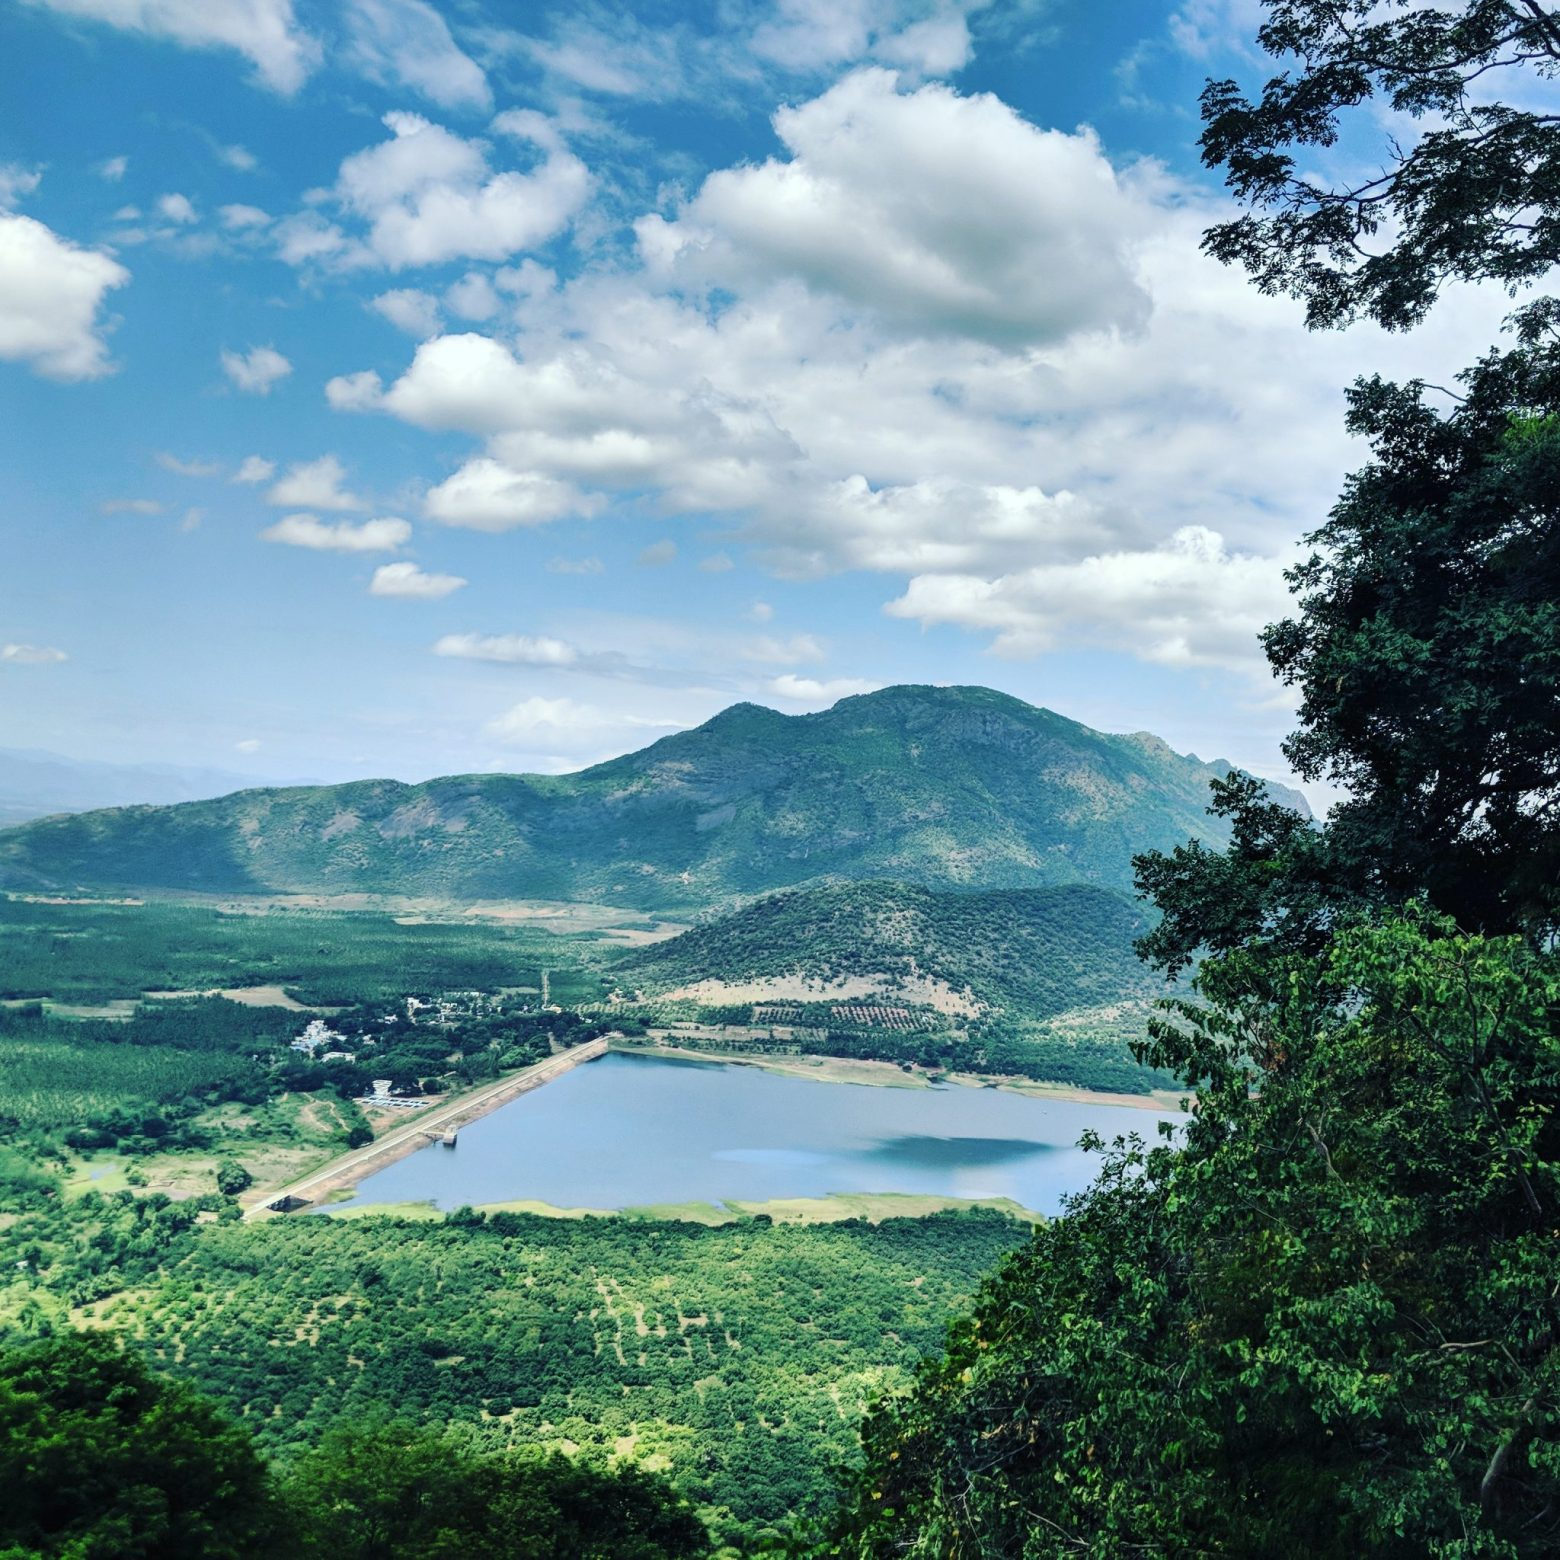 KodaiKanal : The Queen of Hills